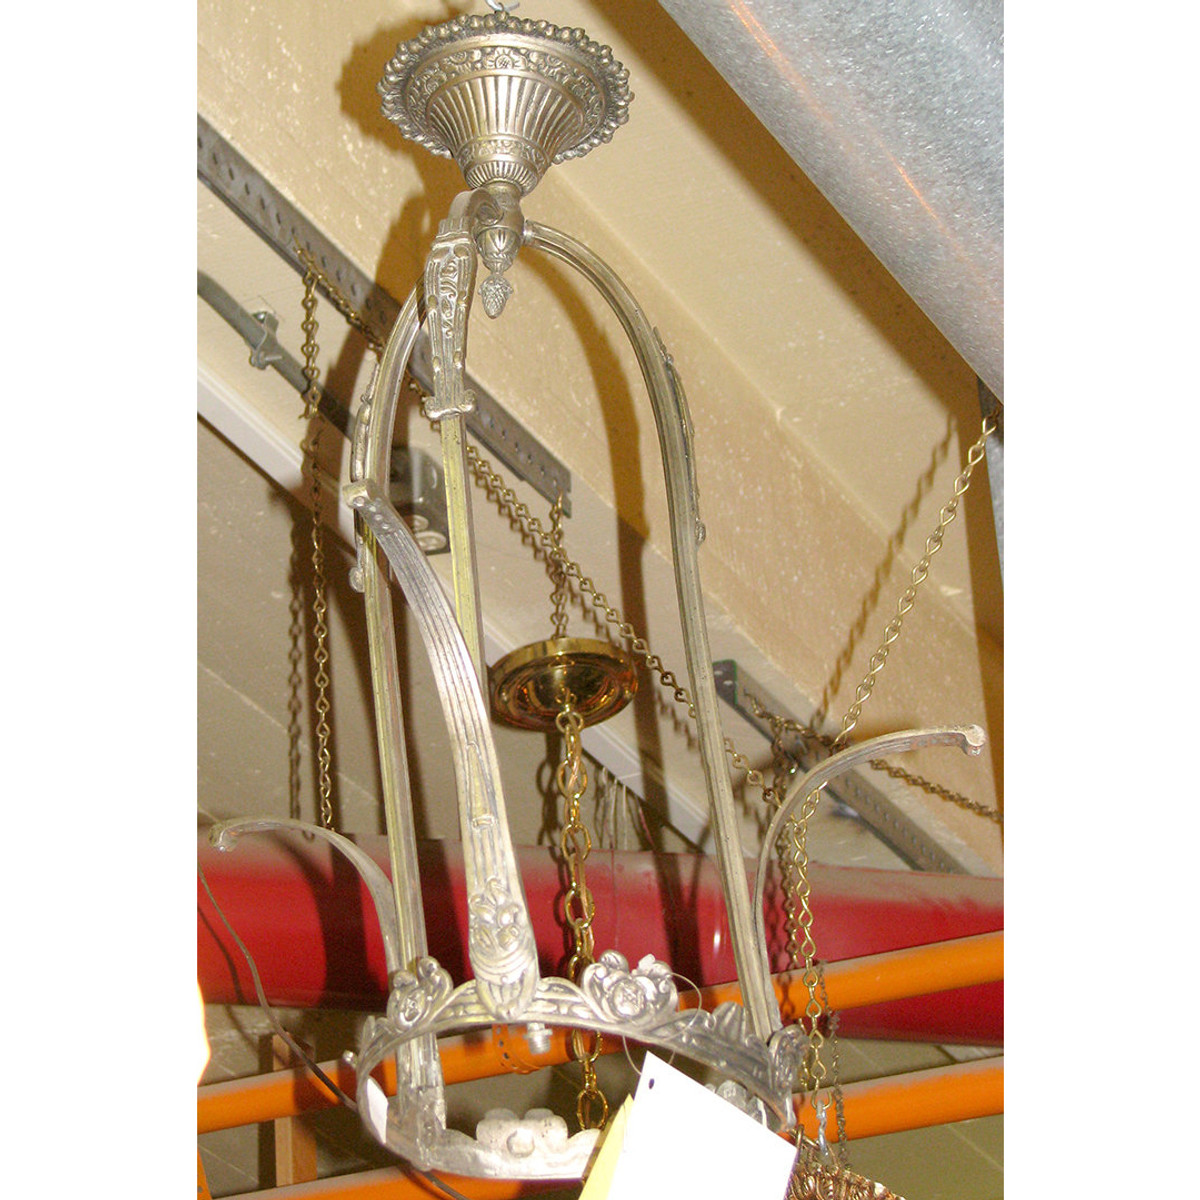 L10672 - Antique French Art Deco Light Fixture Frame - As-Is